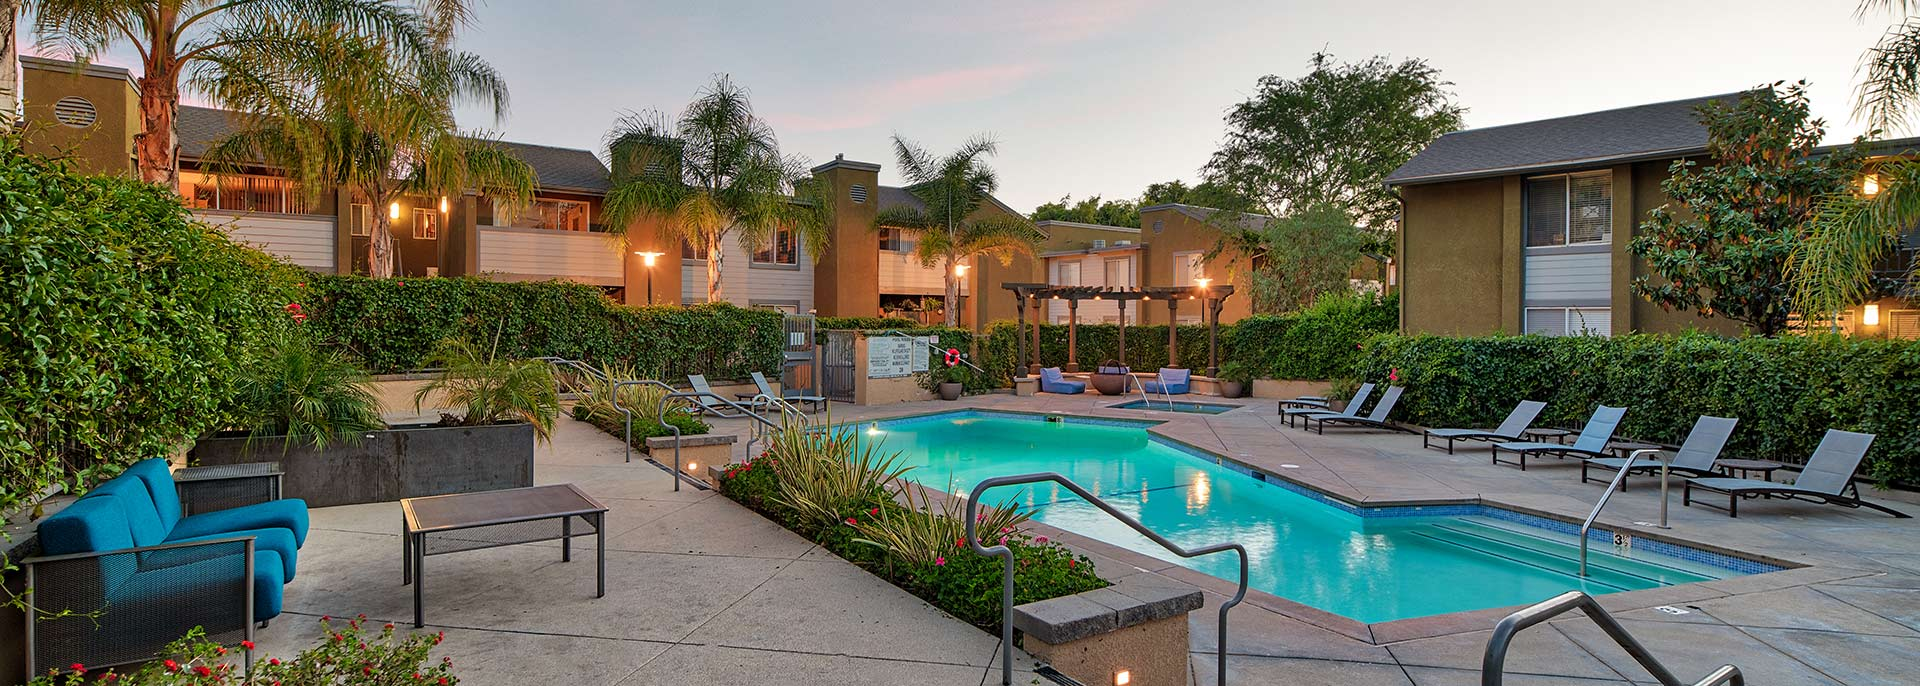 river ranch apartments simi valley apartments floor plans amp pricing decron 29915